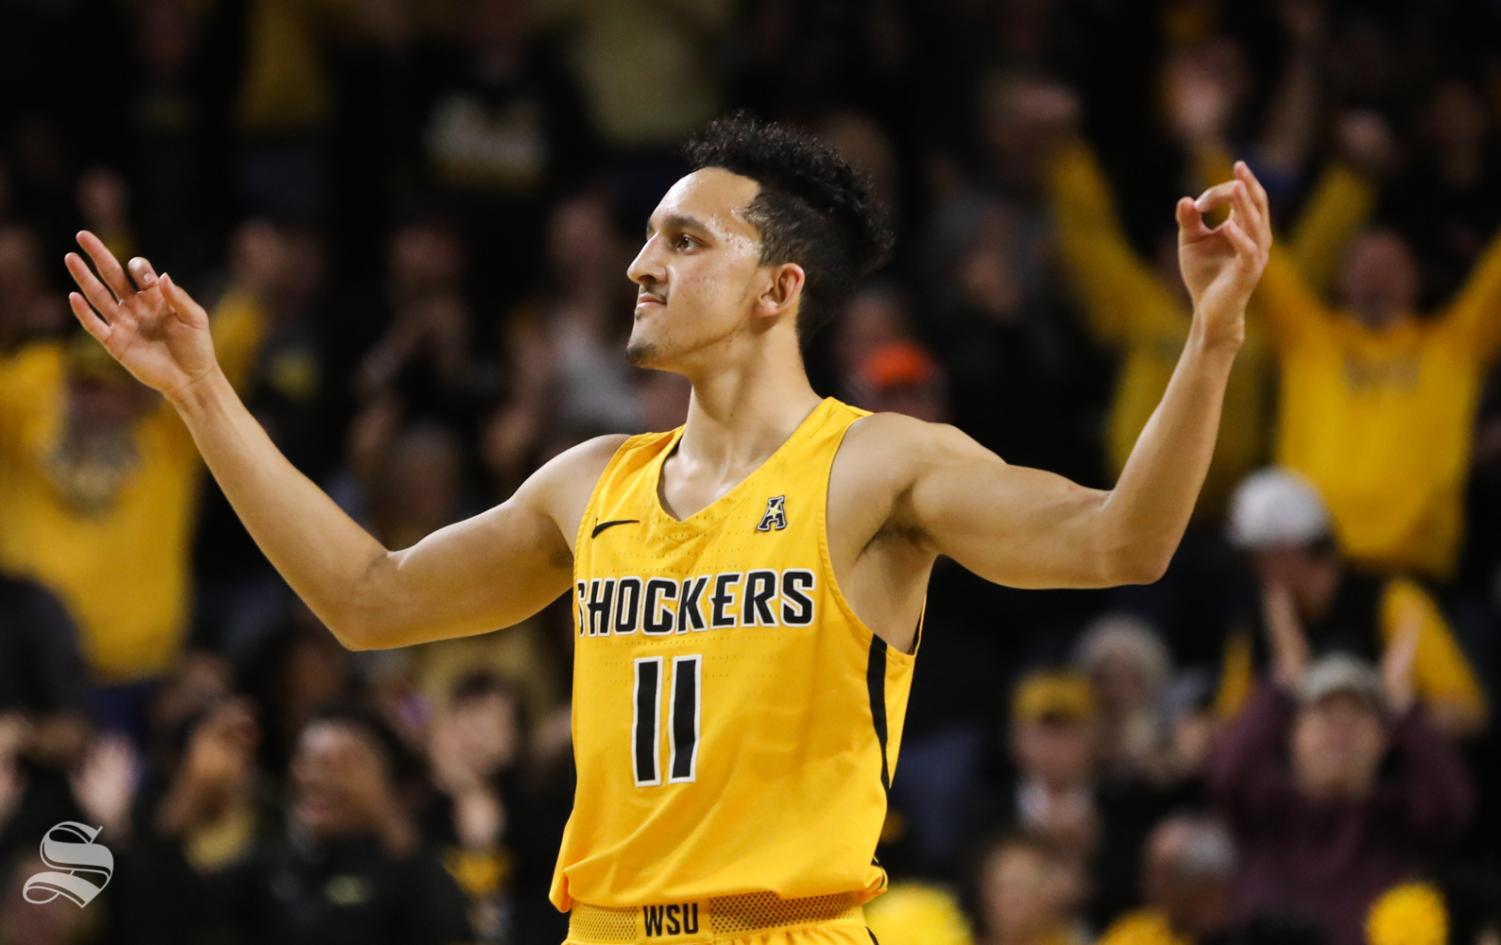 Landry Shamet celebrates a three-point shot during a Shocker victory over Tulsa last season.